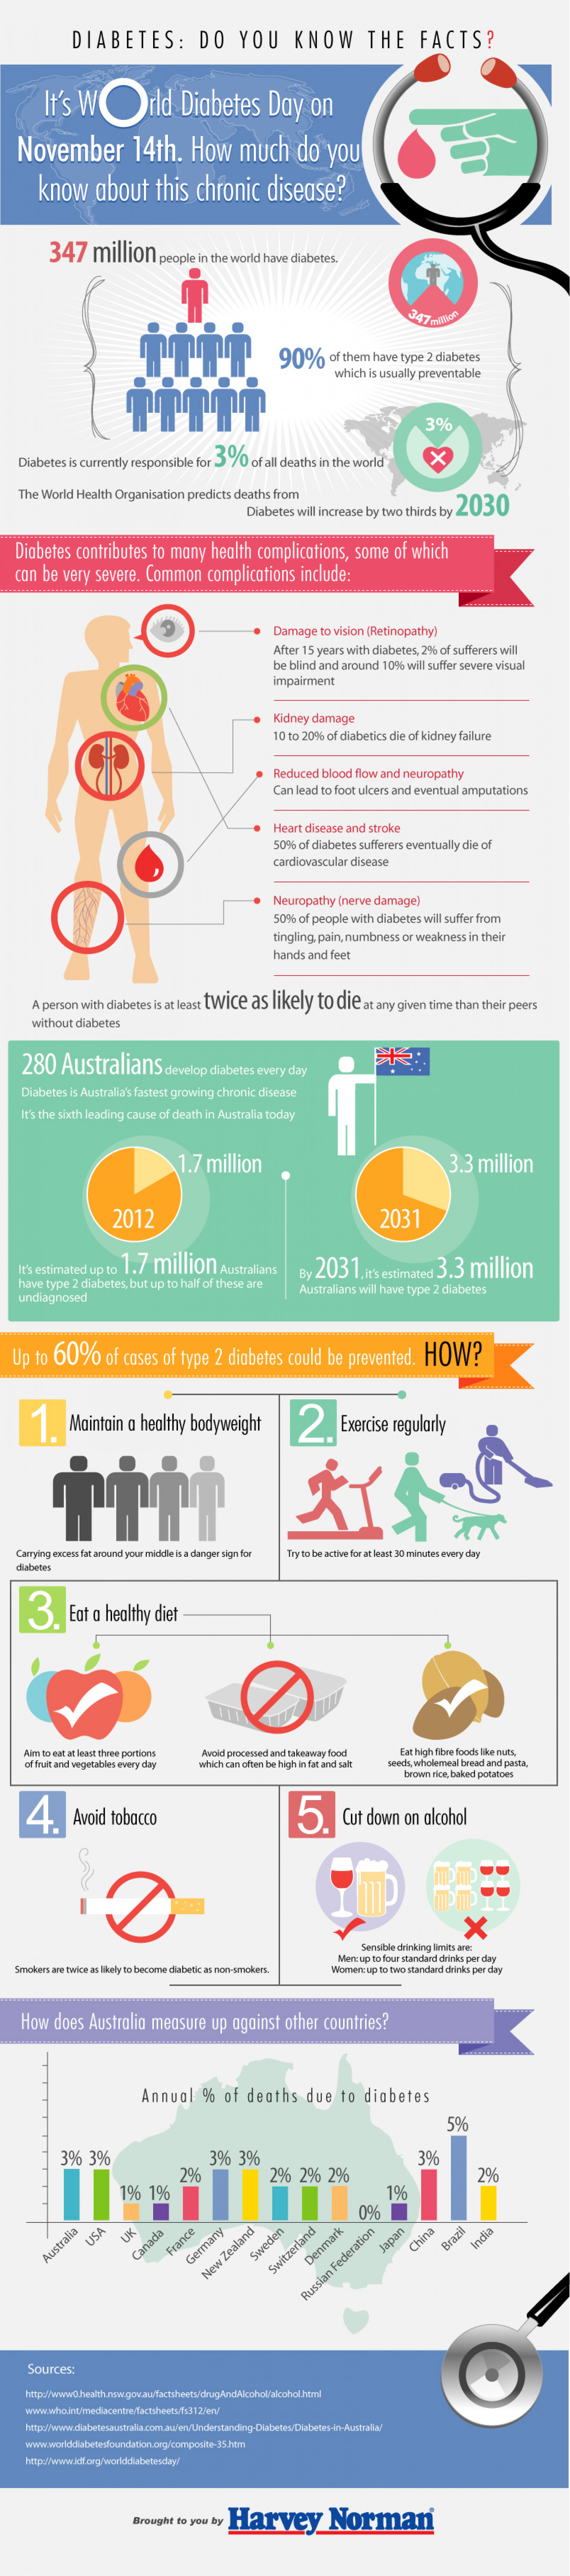 World Diabetes Day Infographic